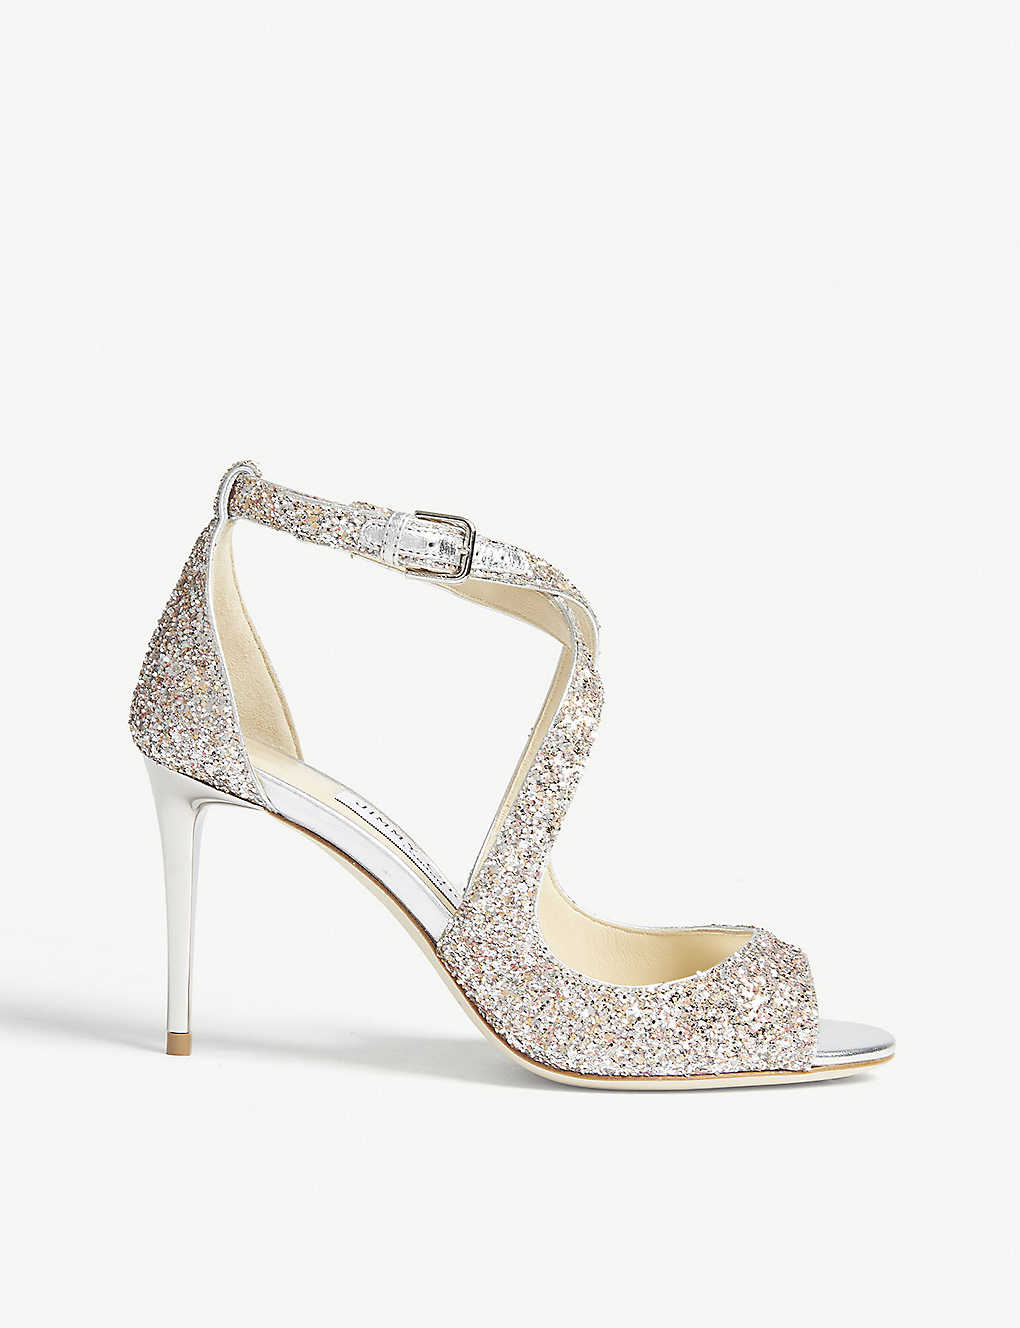 f2eb385d5d2 JIMMY CHOO - Emily 85 glitter heeled sandals | Selfridges.com